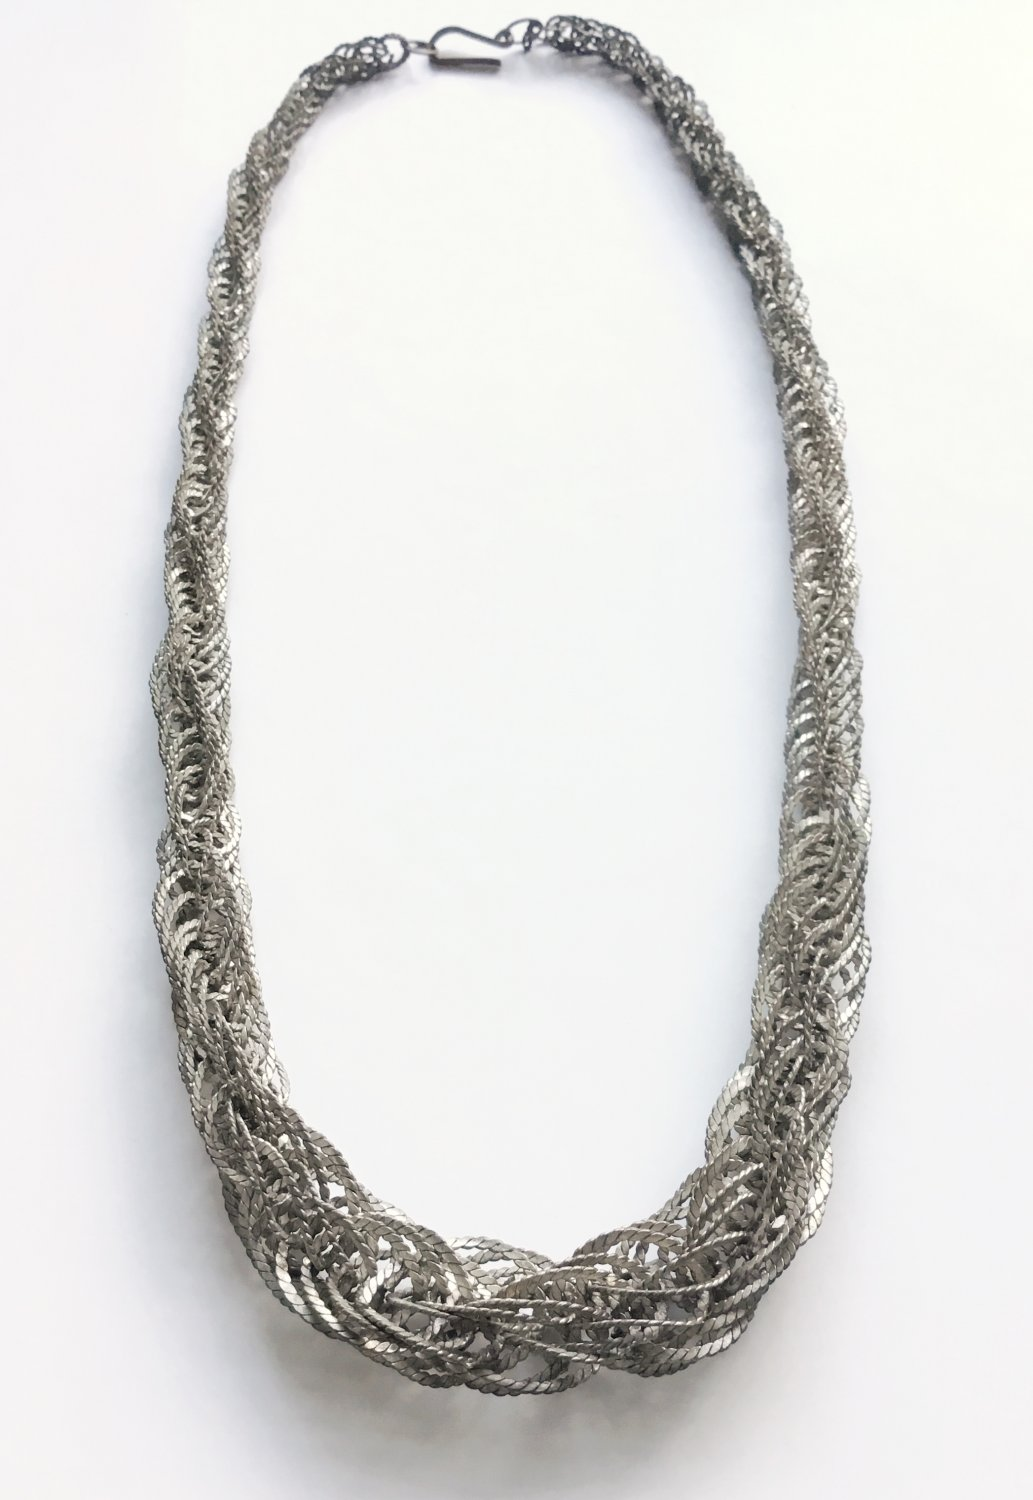 Vintage Mexican Woven Link Graduated Necklace